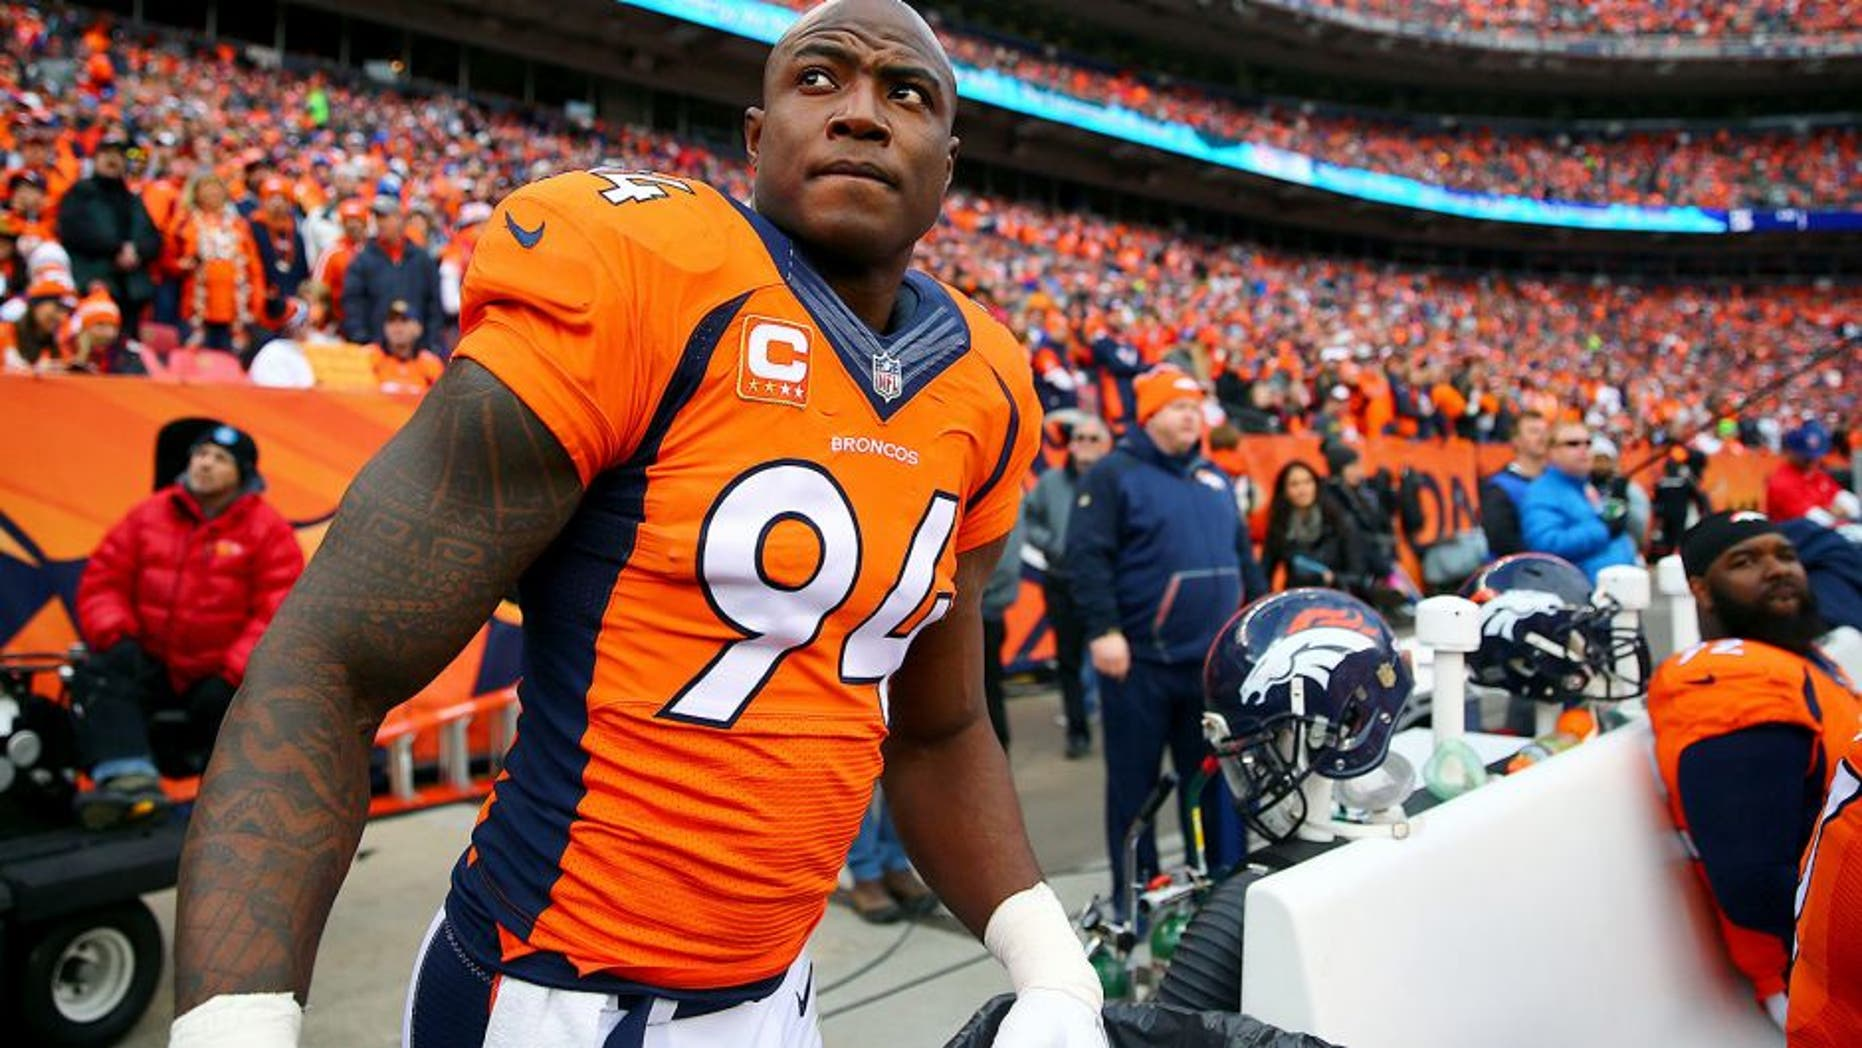 Jan 24, 2016; Denver, CO, USA; Denver Broncos defensive end DeMarcus Ware (94) against the New England Patriots in the AFC Championship football game at Sports Authority Field at Mile High. The Broncos defeated the Patriots 20-18 to advance to the Super Bowl. Mandatory Credit: Mark J. Rebilas-USA TODAY Sports